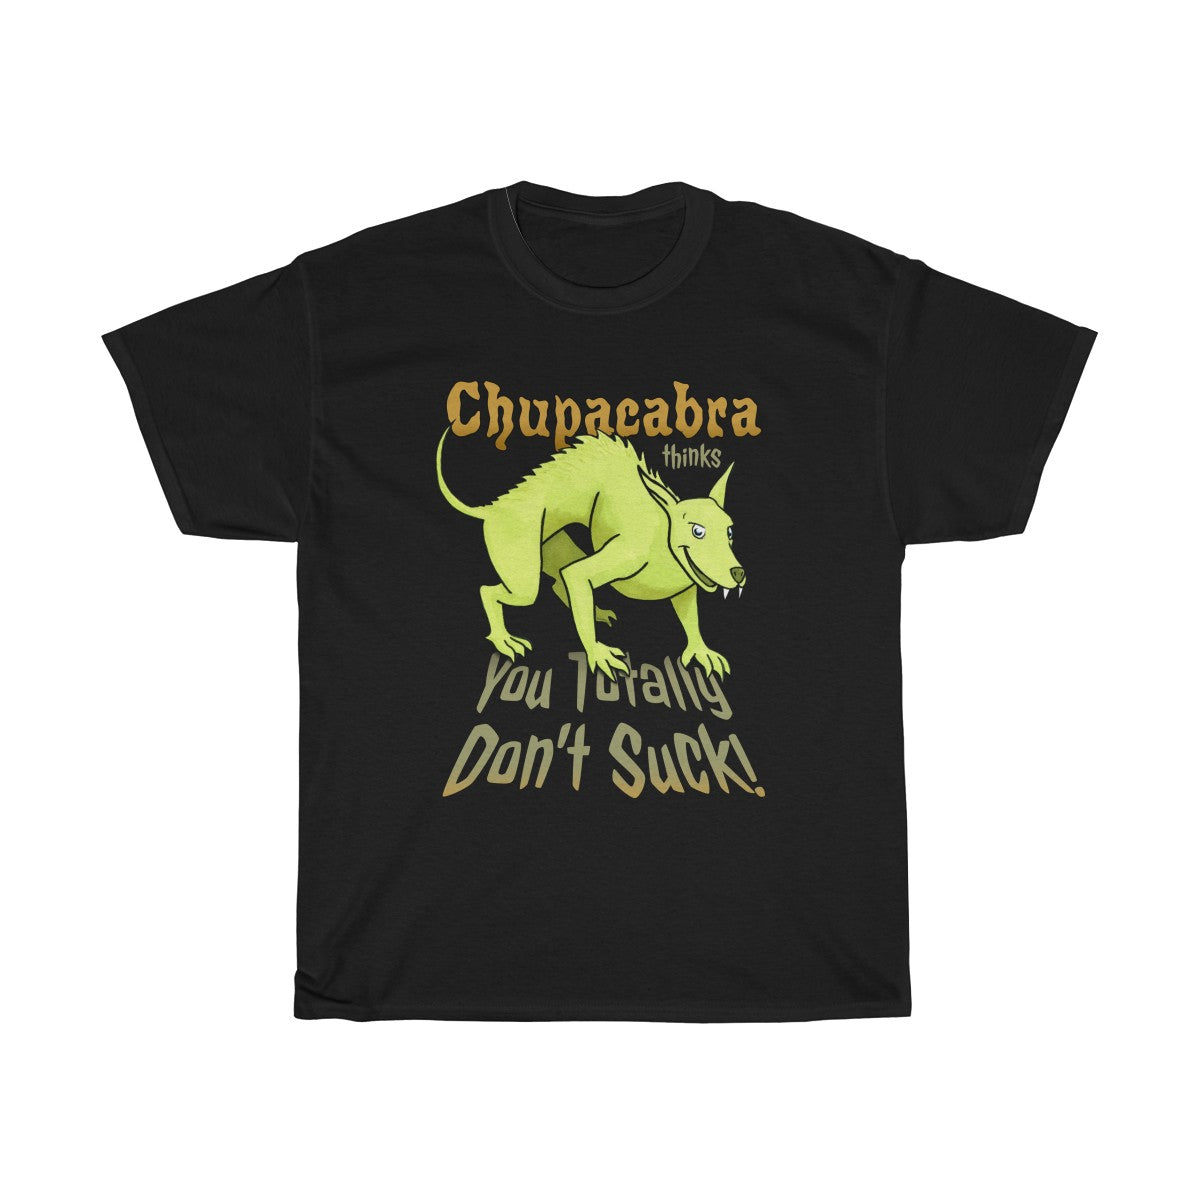 Chupacabra thinks you totally don't suck! Black Cotton T-Shirt